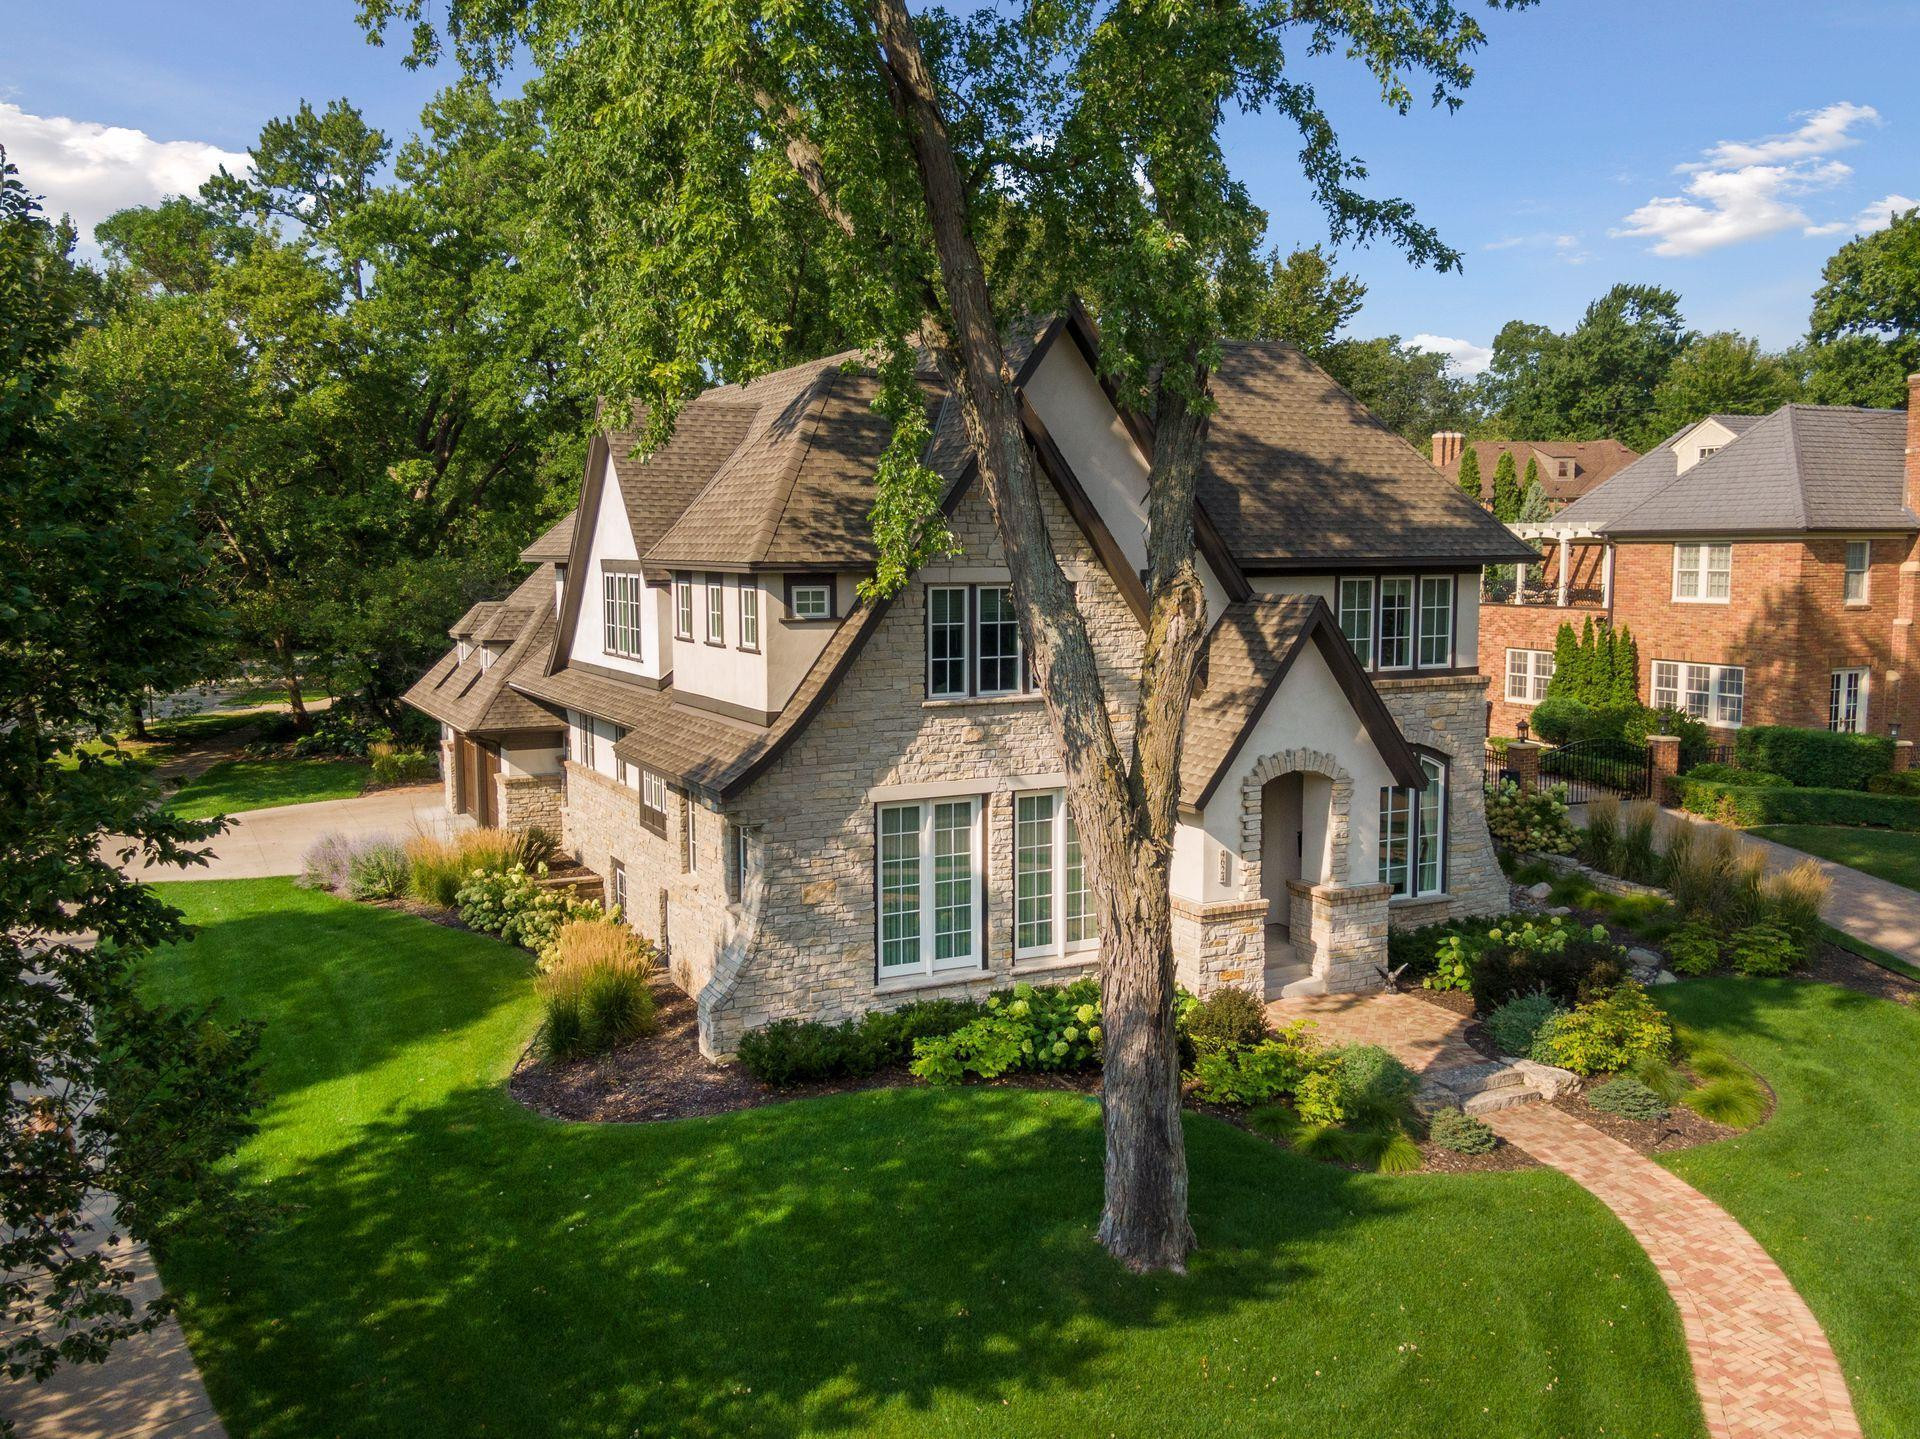 Located on the premier street of Moorland across from Wooddale Park and Edina Country Club